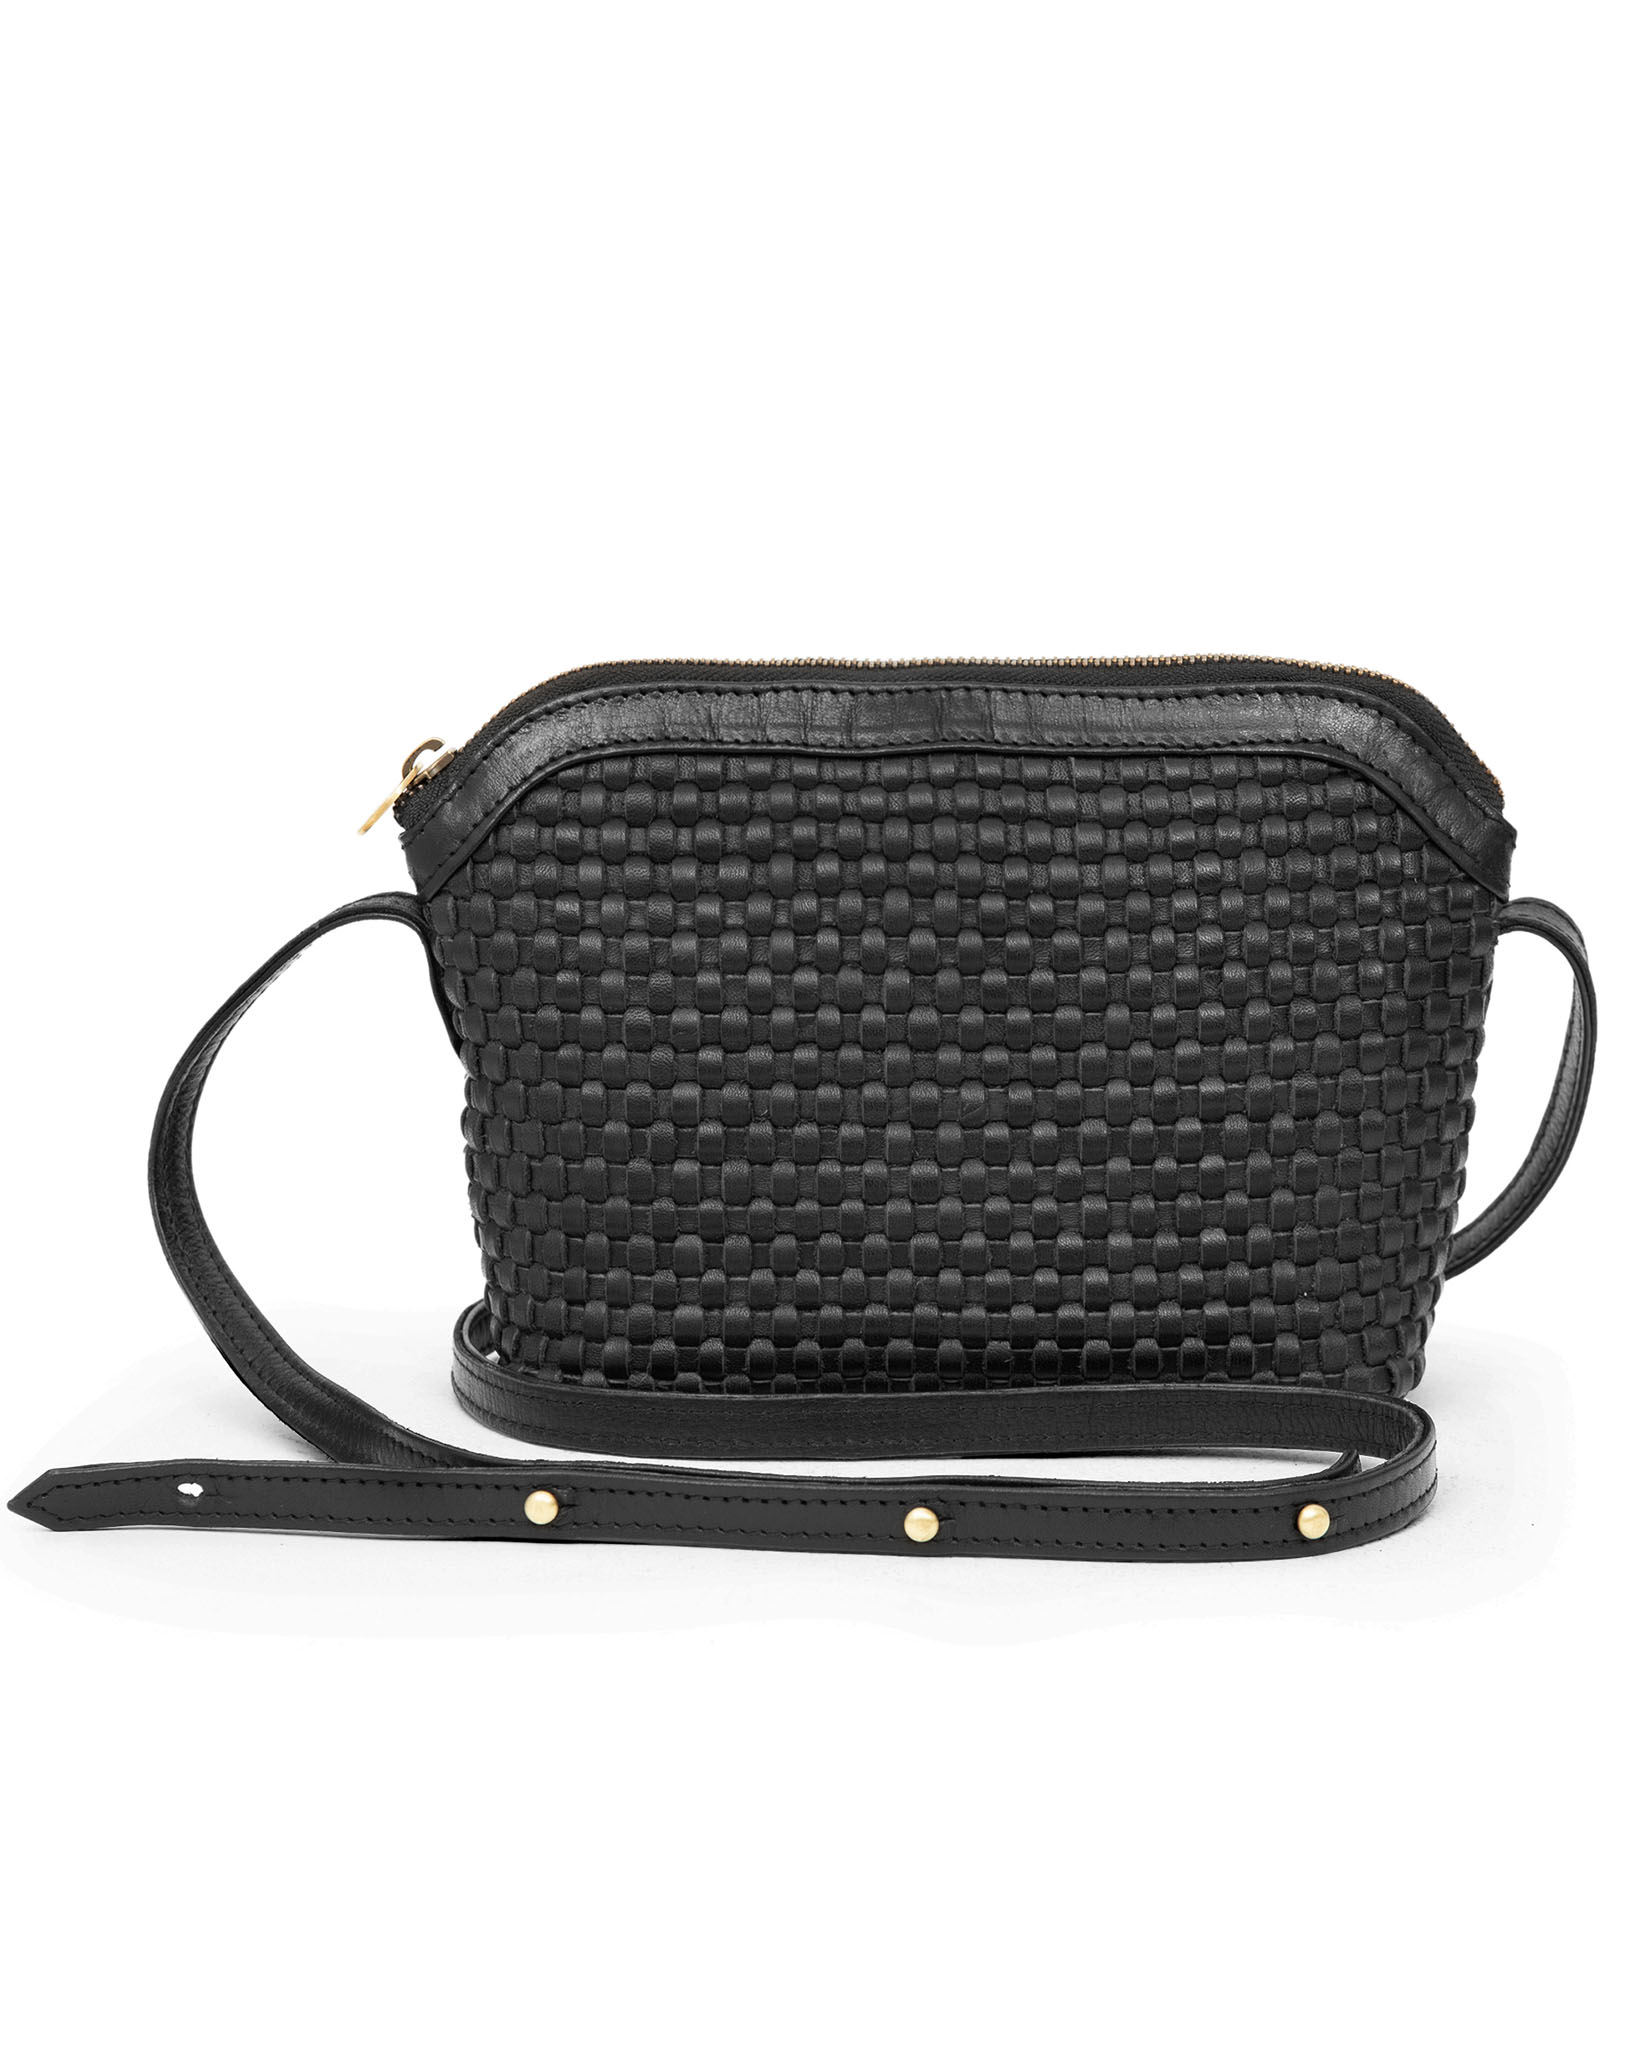 LADY HESTER CROSS BODY BAG